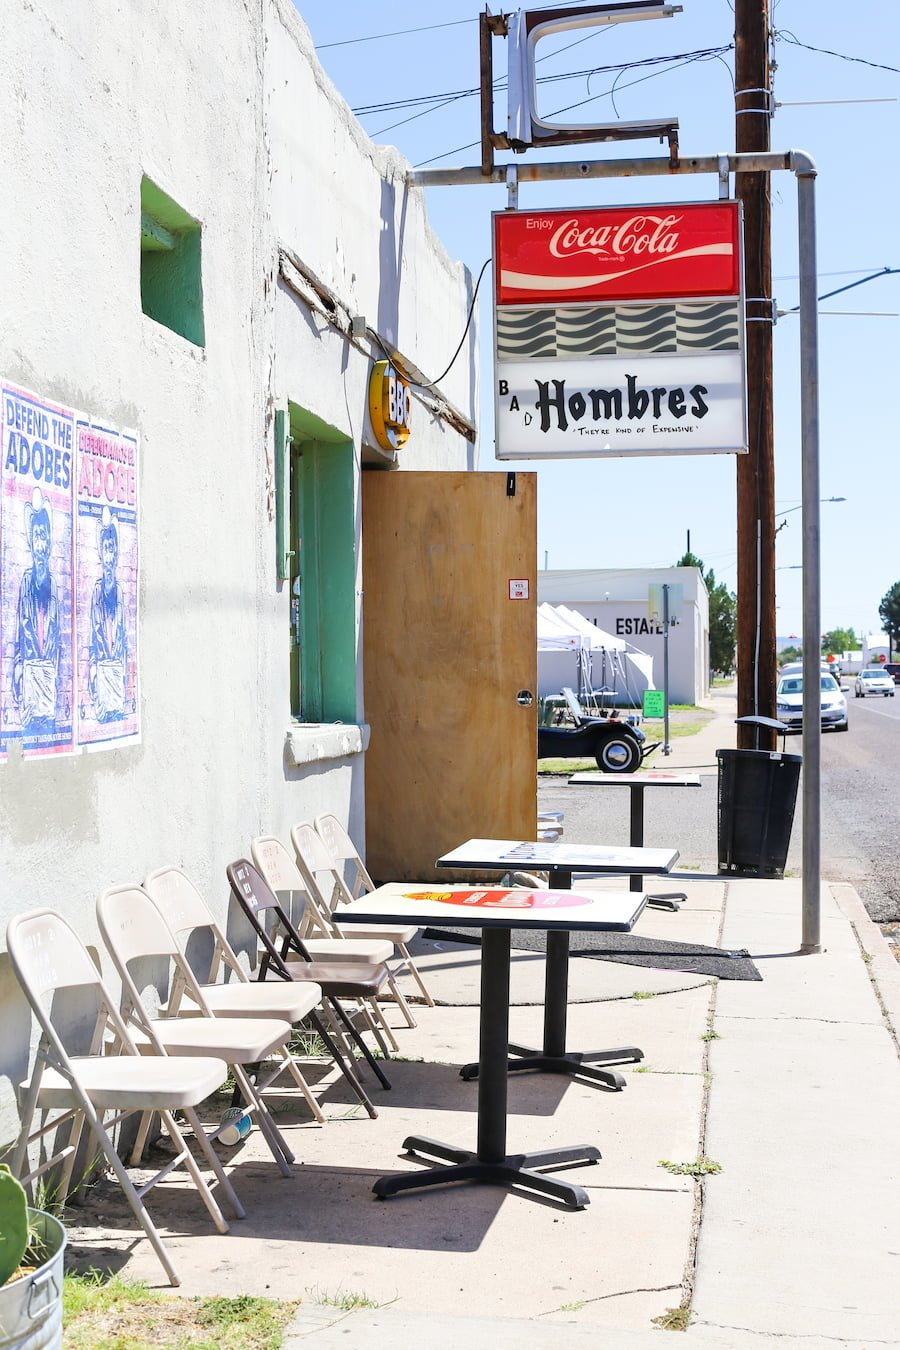 Exterior of Boyz II Men restaurant in Marfa, Texas